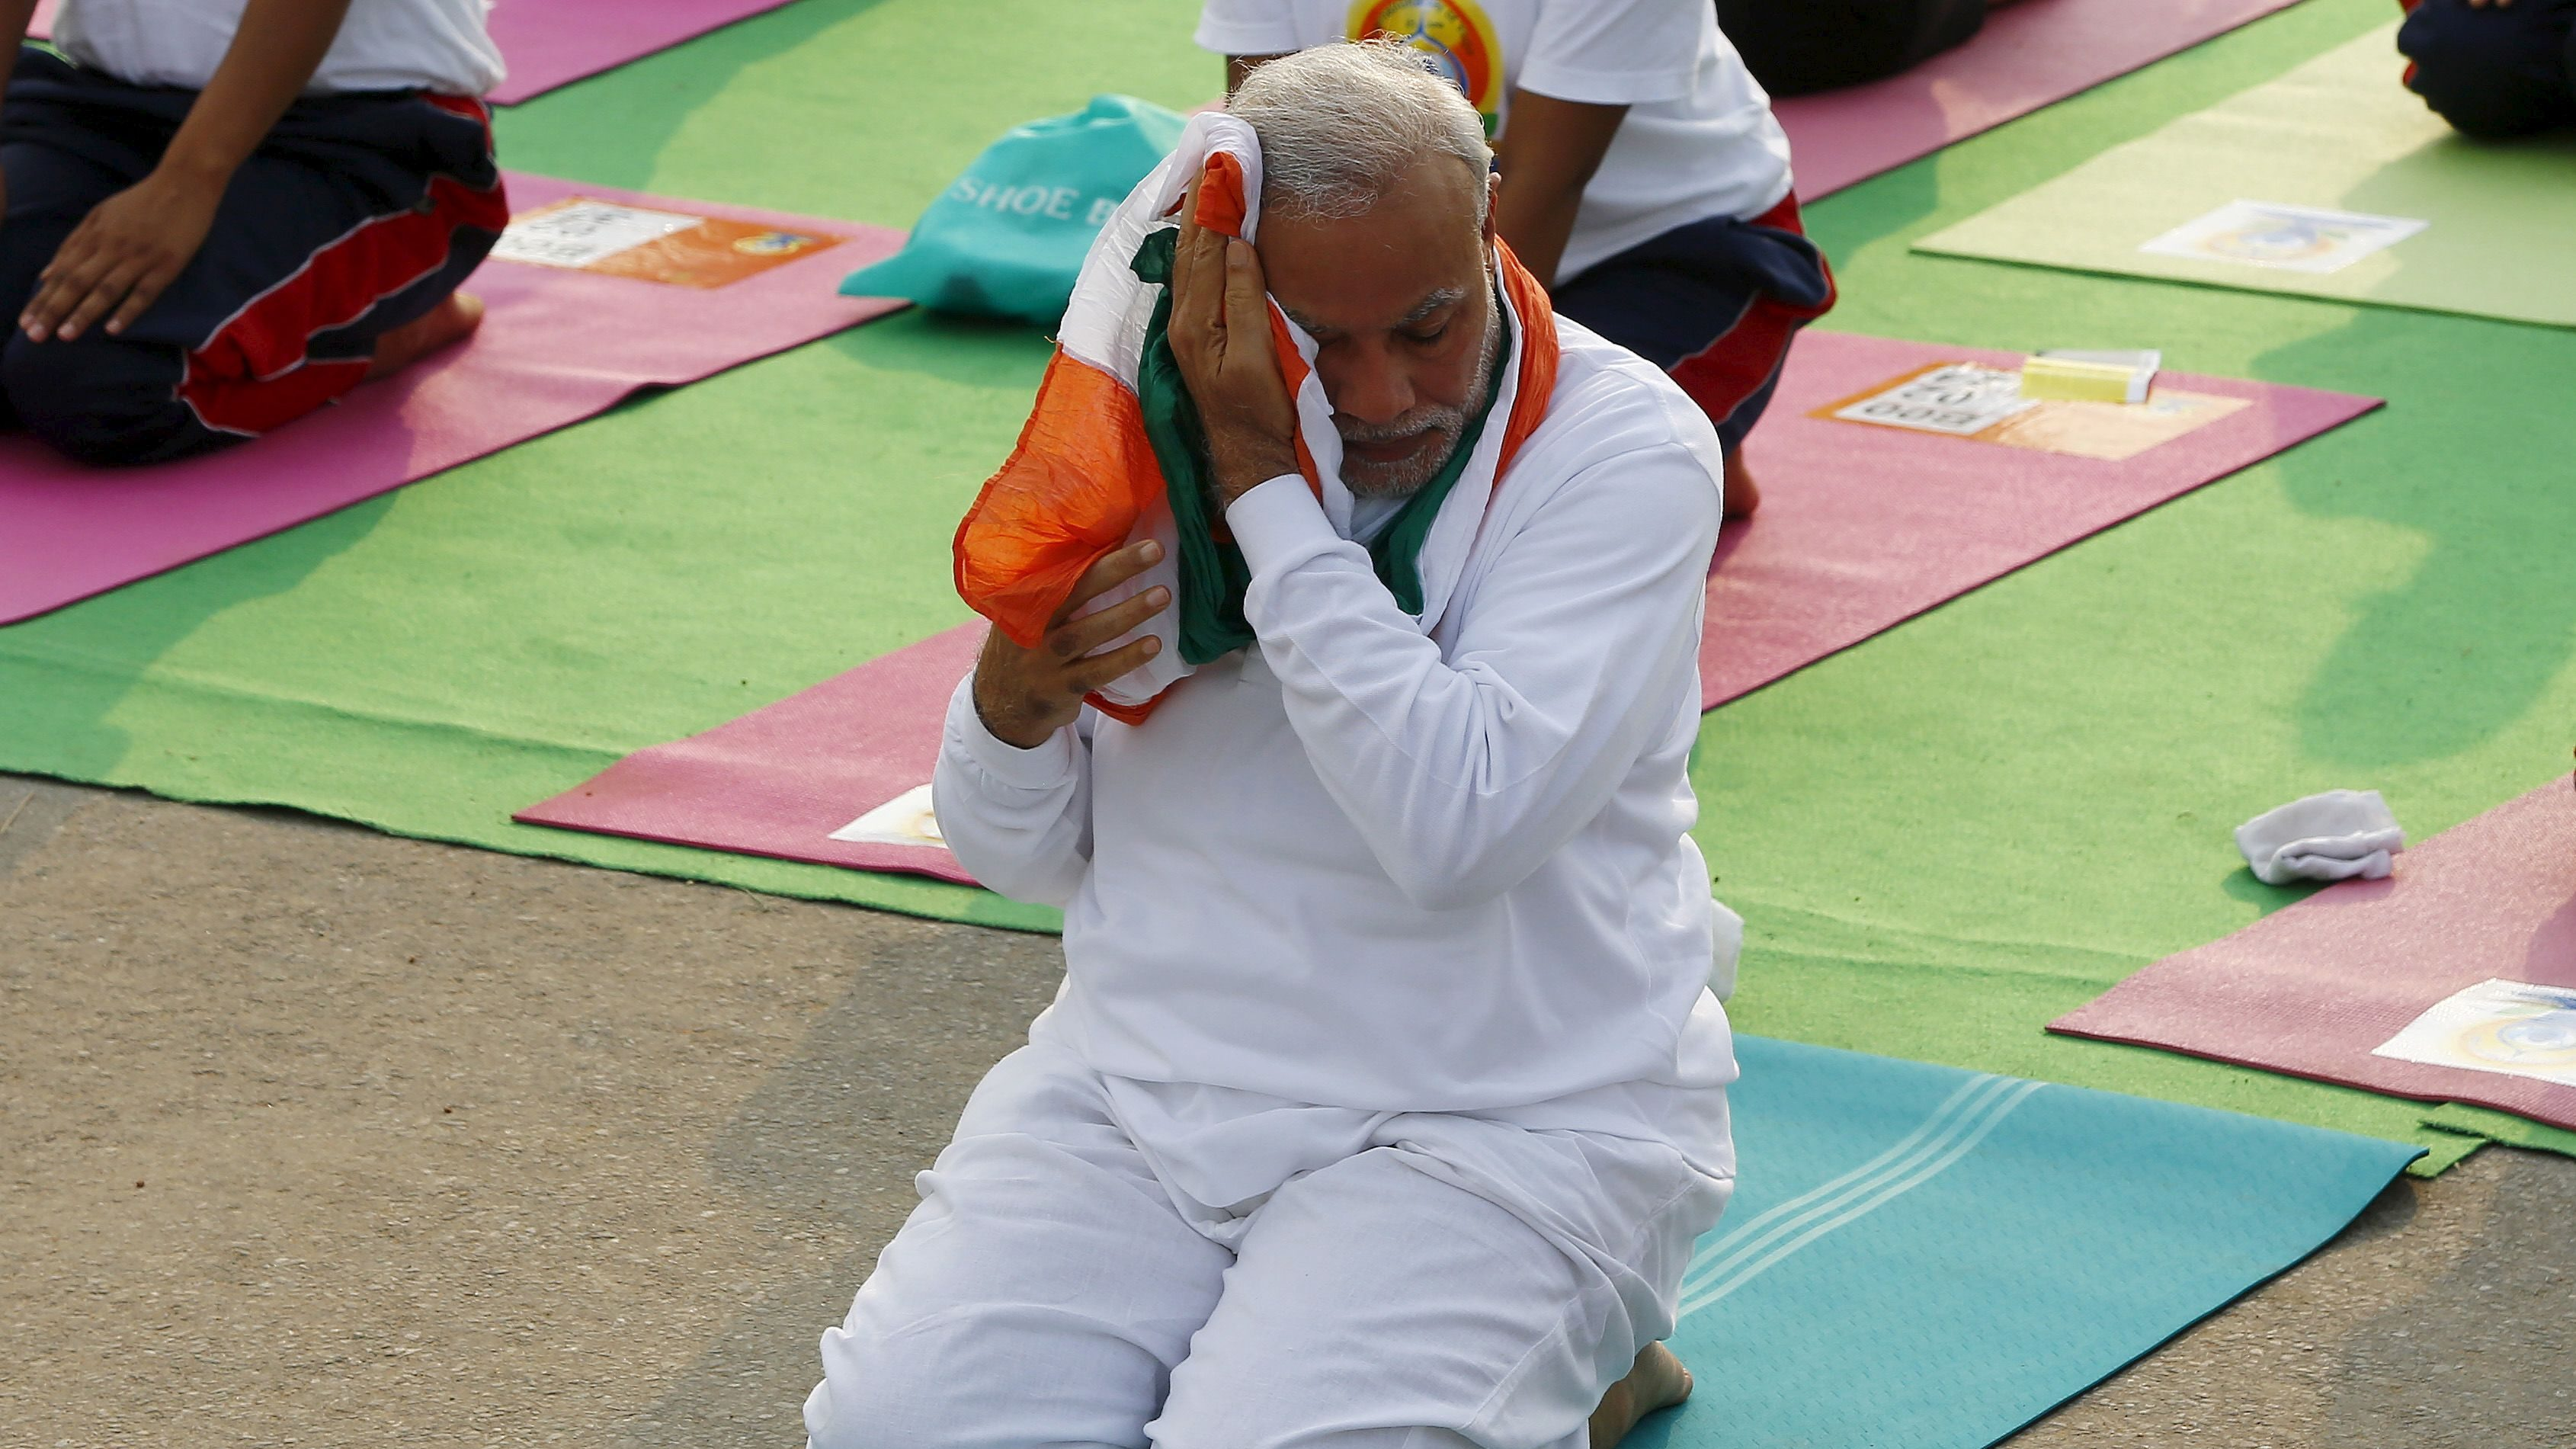 India's Prime Minister Narendra Modi wipes his perspiration with a scarf as he performs yoga to mark the International Day of Yoga, in New Delhi, India, June 21, 2015. Modi led tens of thousands of people in the yoga session in the centre of the capital on Sunday to showcase the country's signature cultural export, which has prompted criticism of fomenting social divisions at home.